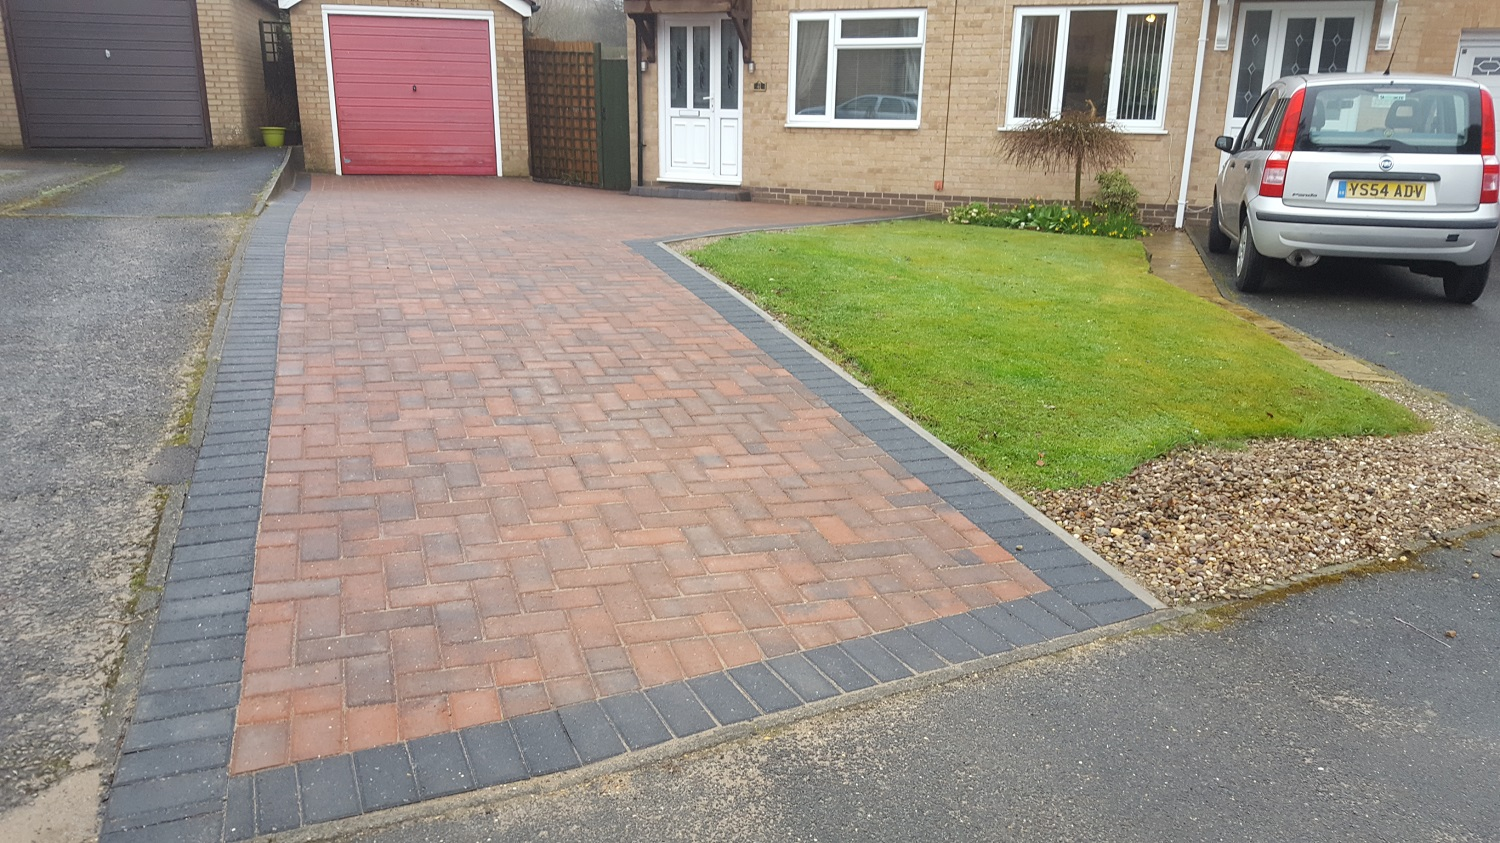 C19 Plaspave Brindle Block Paving Driveway at Walton in Chesterfield